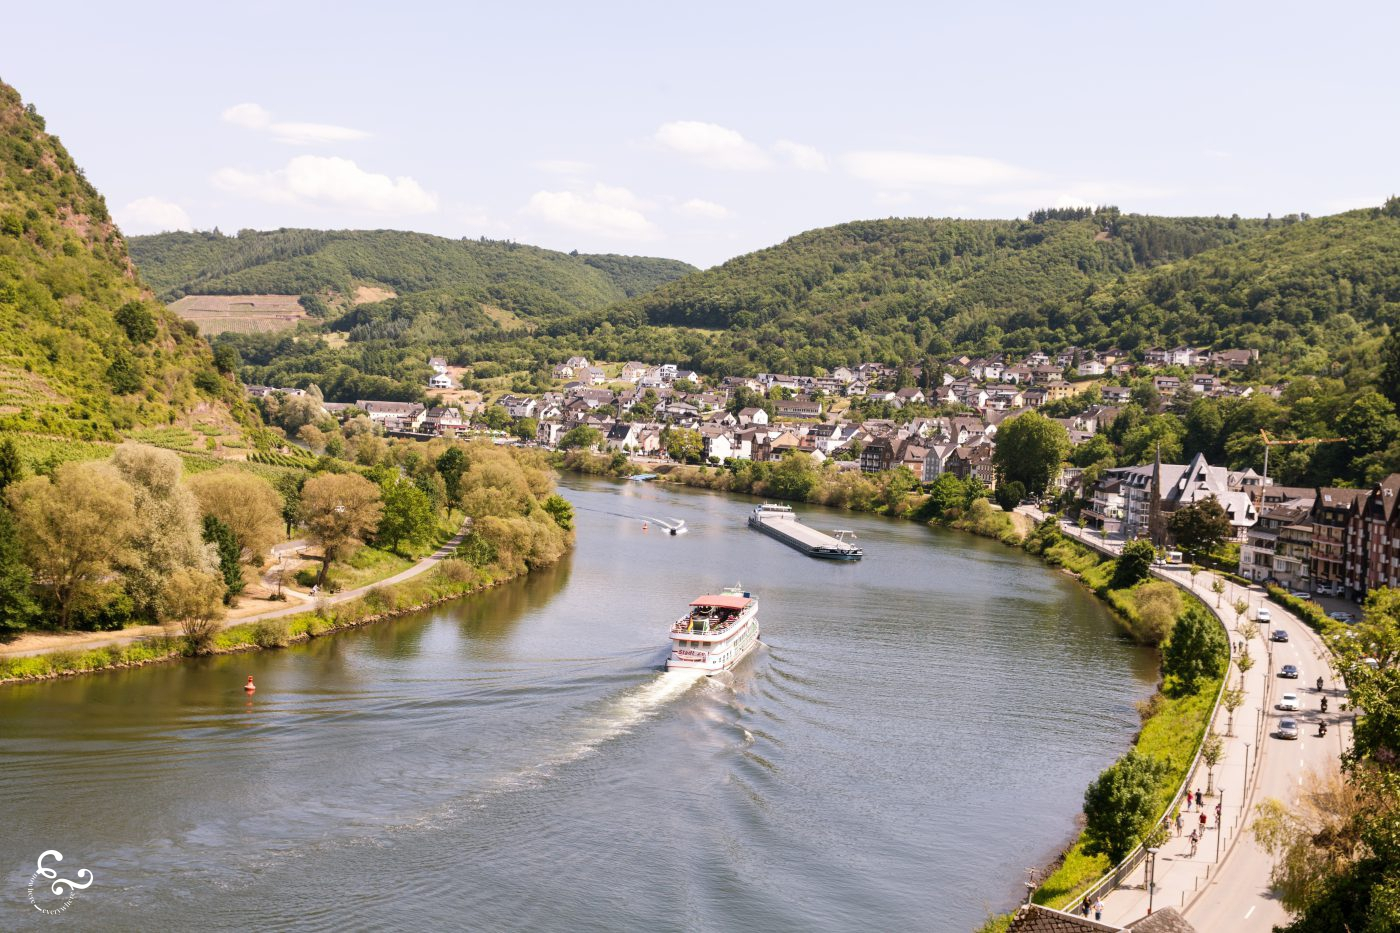 Cochem Moselle River Germany Deutschland Nowhere & Everywhere Lis Dingjan Free Range Pixels Travel Photography Sustainability Environmentalism Instagram